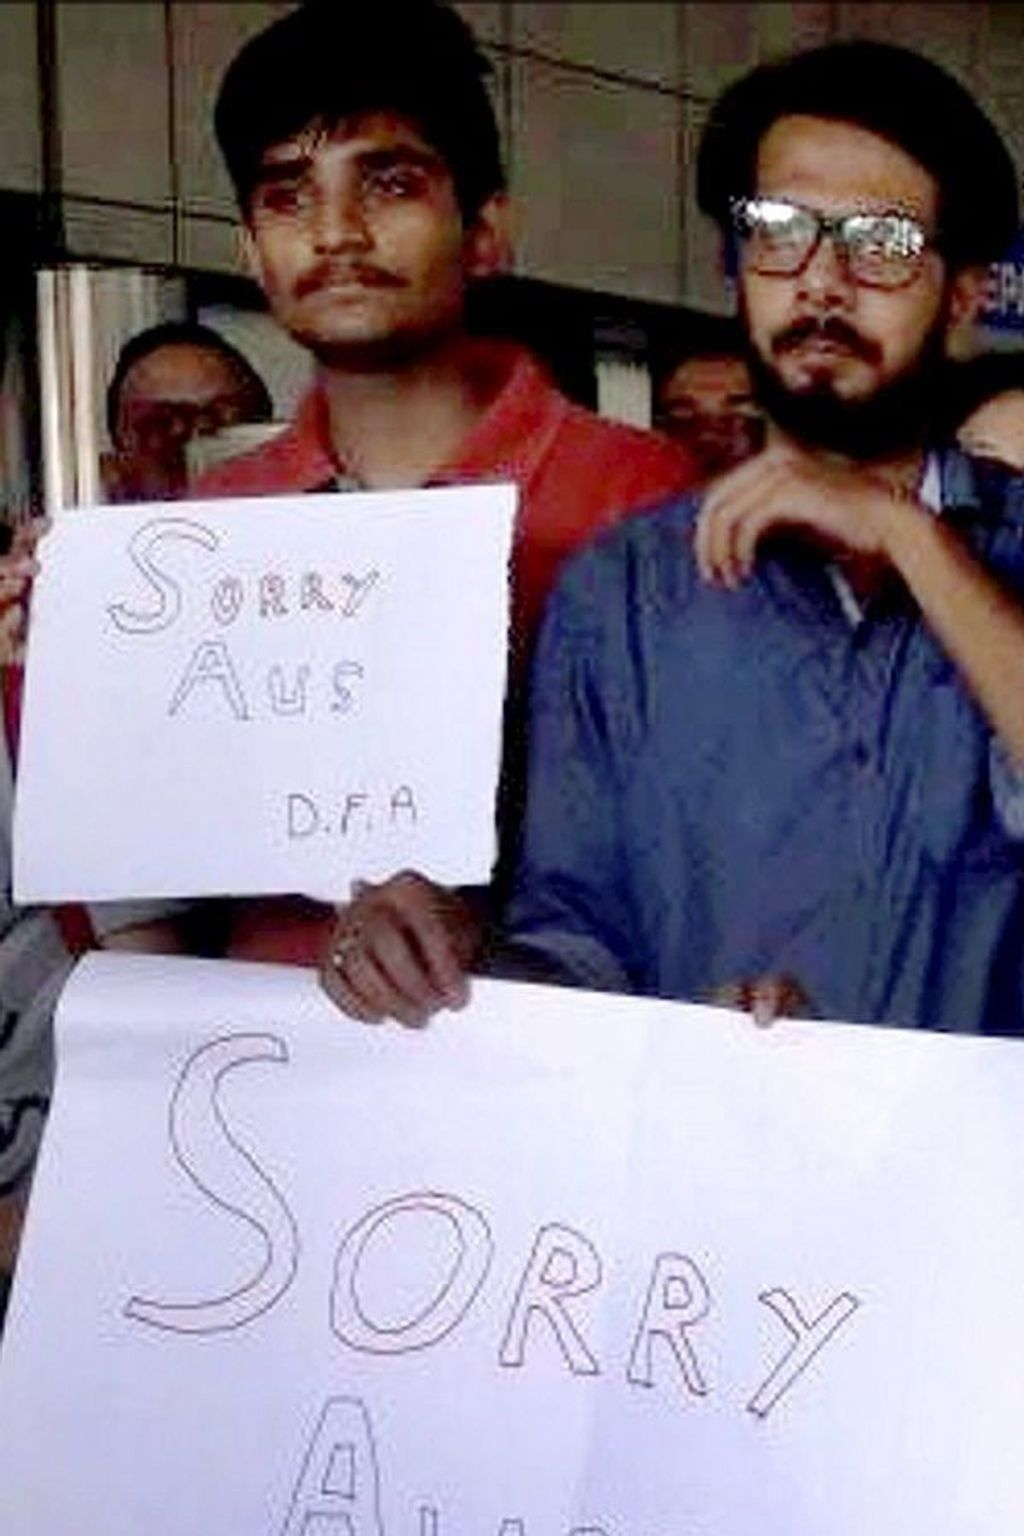 Youngsters In Guwahati Say Sorry For Throwing Rock At Australian Cricket Team's Bus